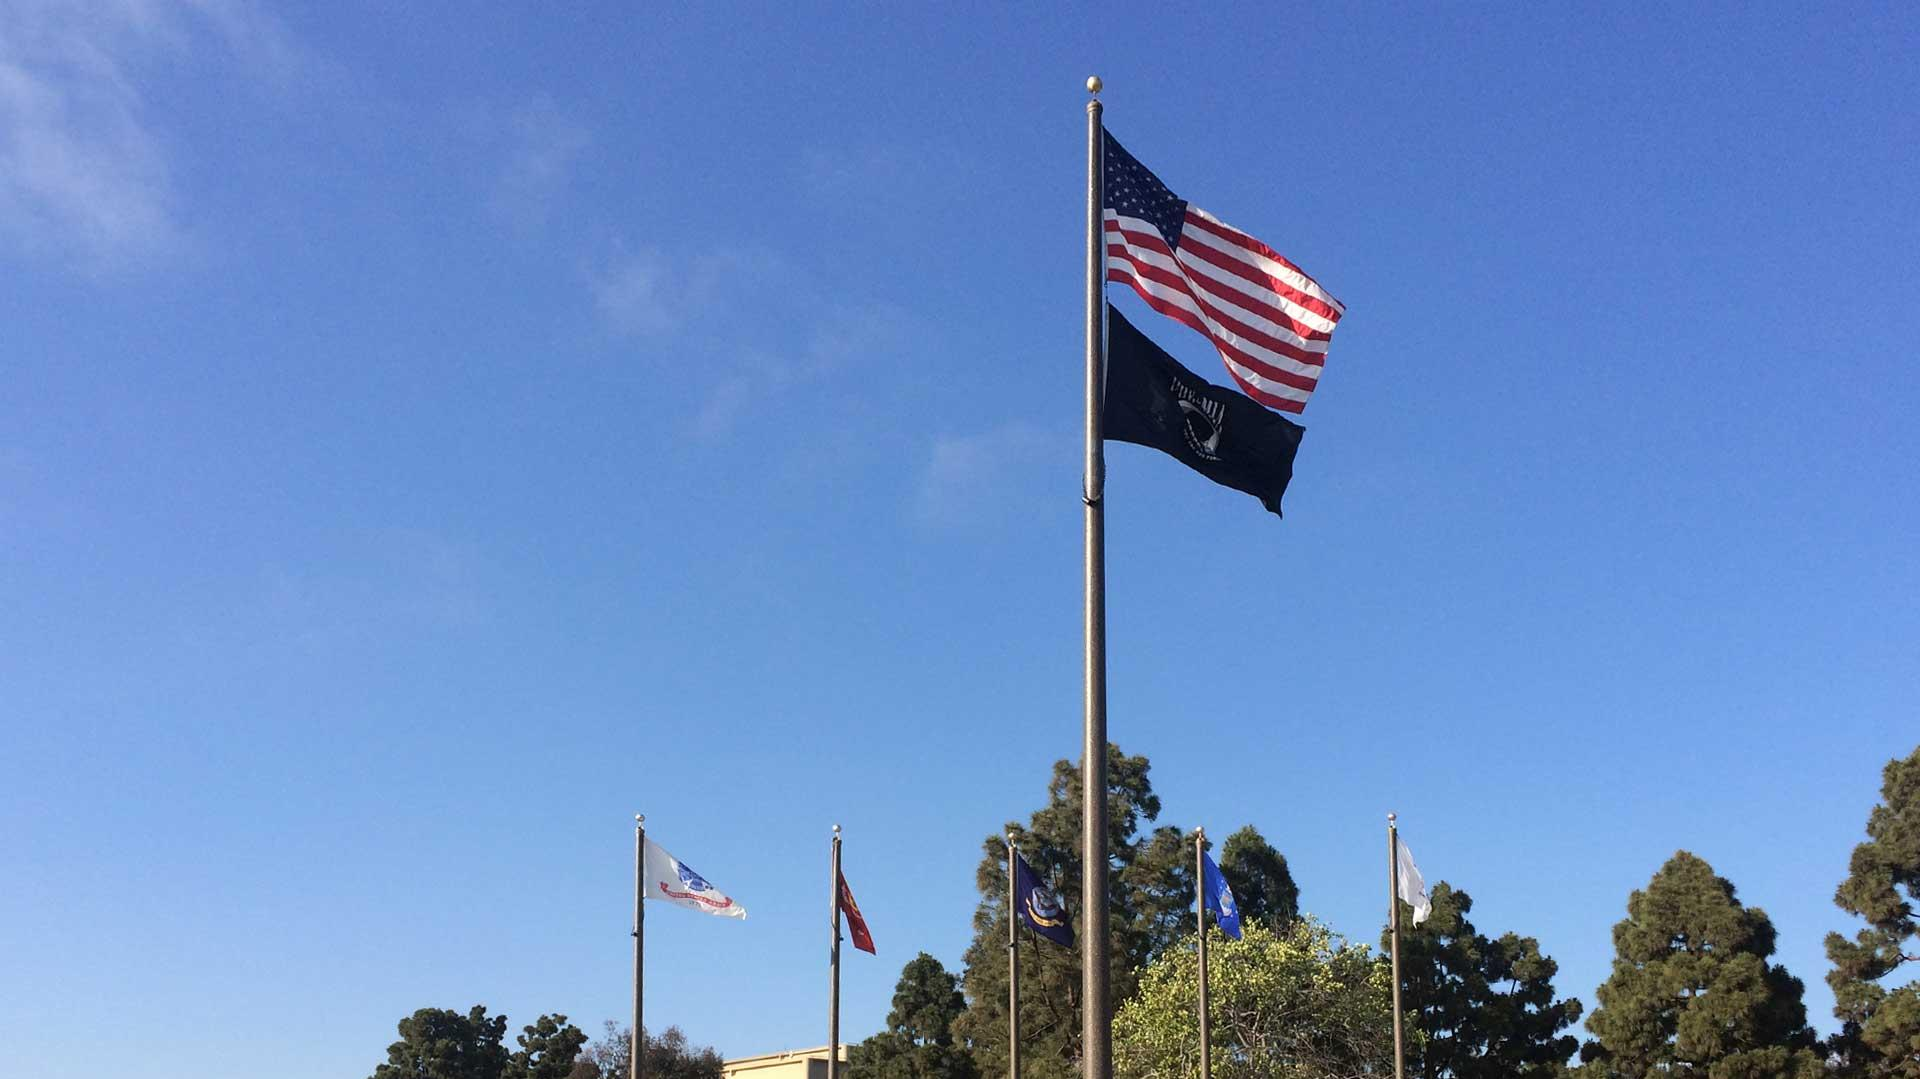 A series of Ameron flag poles displayed in front of a small monument.